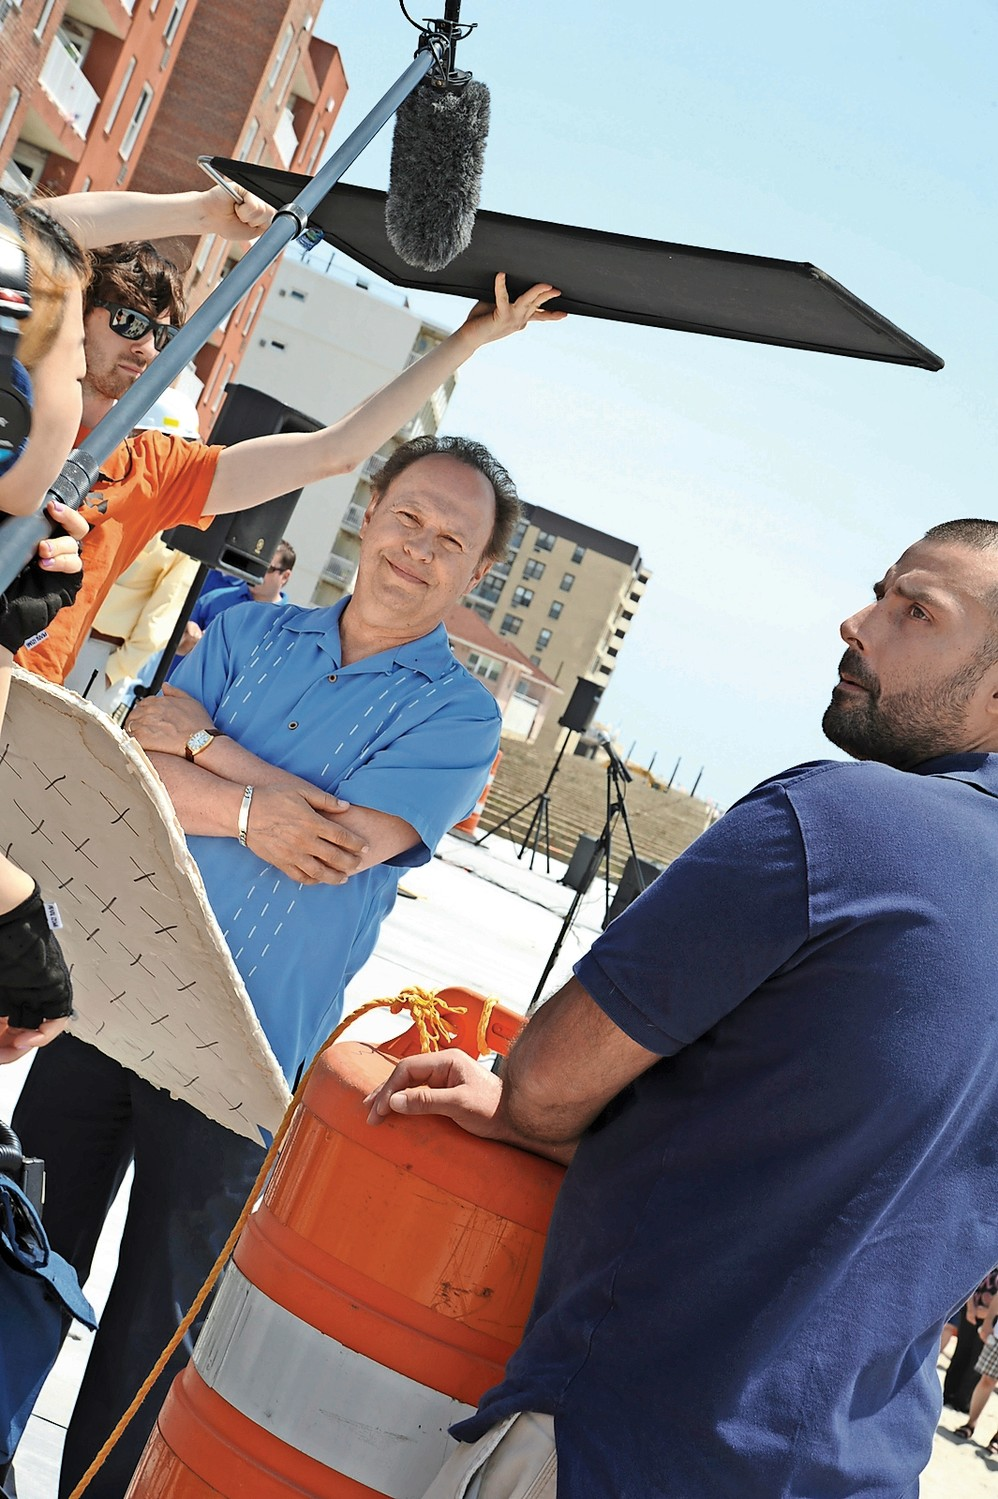 Billy Crystal, pictured on the boardwalk in 2013, has been filming scenes in Long Beach for a new comedy that's set to be released next year.